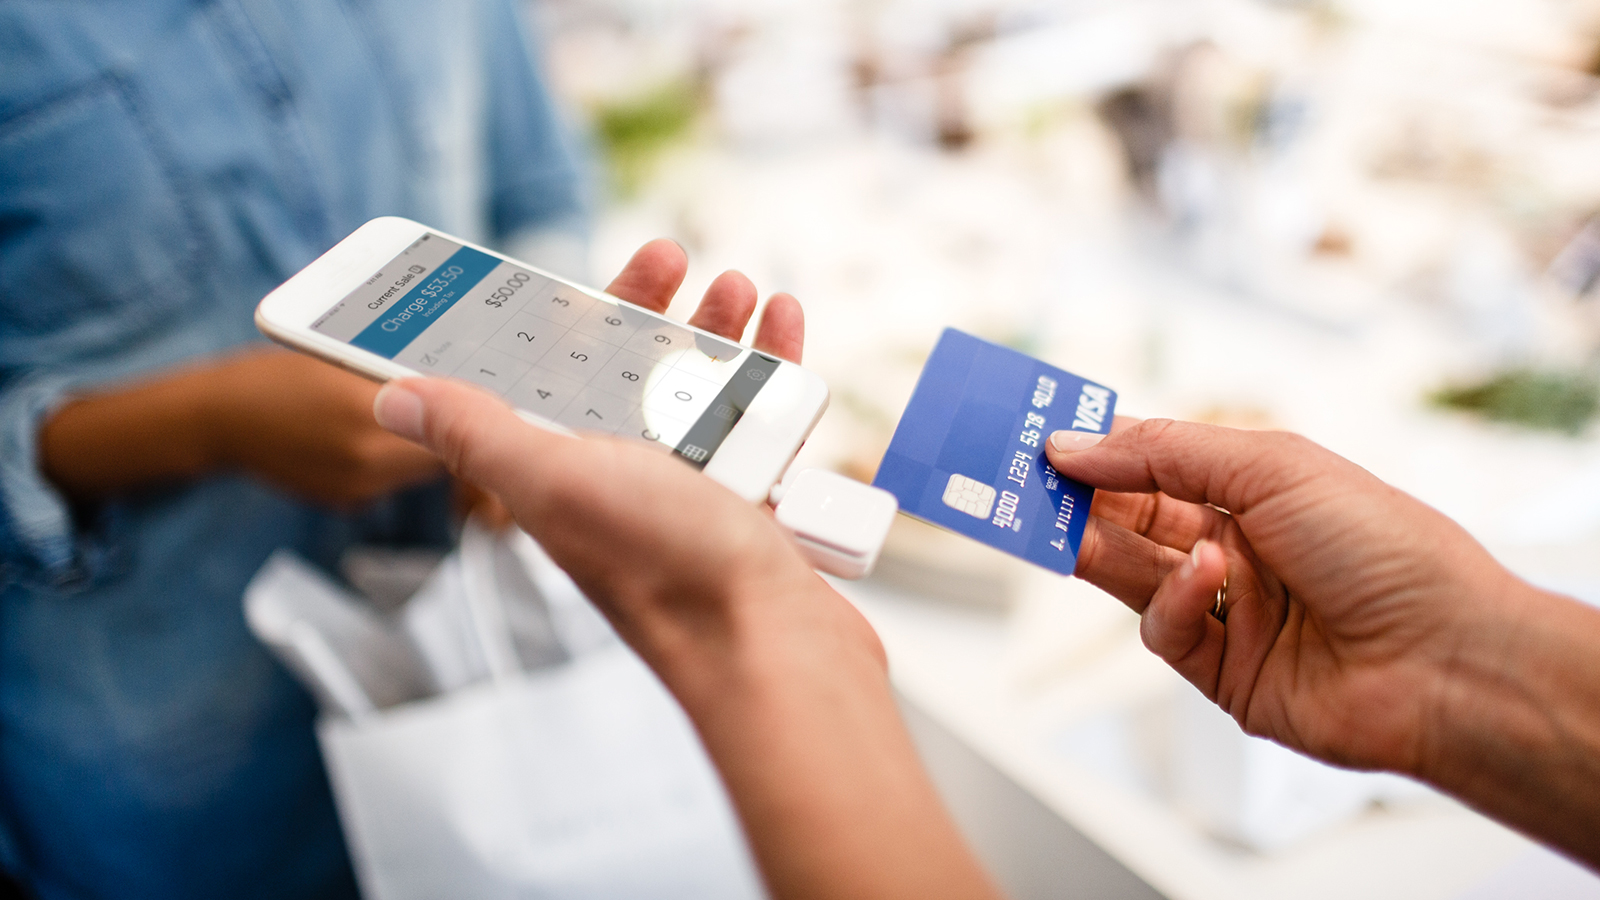 Merchant using a mobile phone to complete a transaction